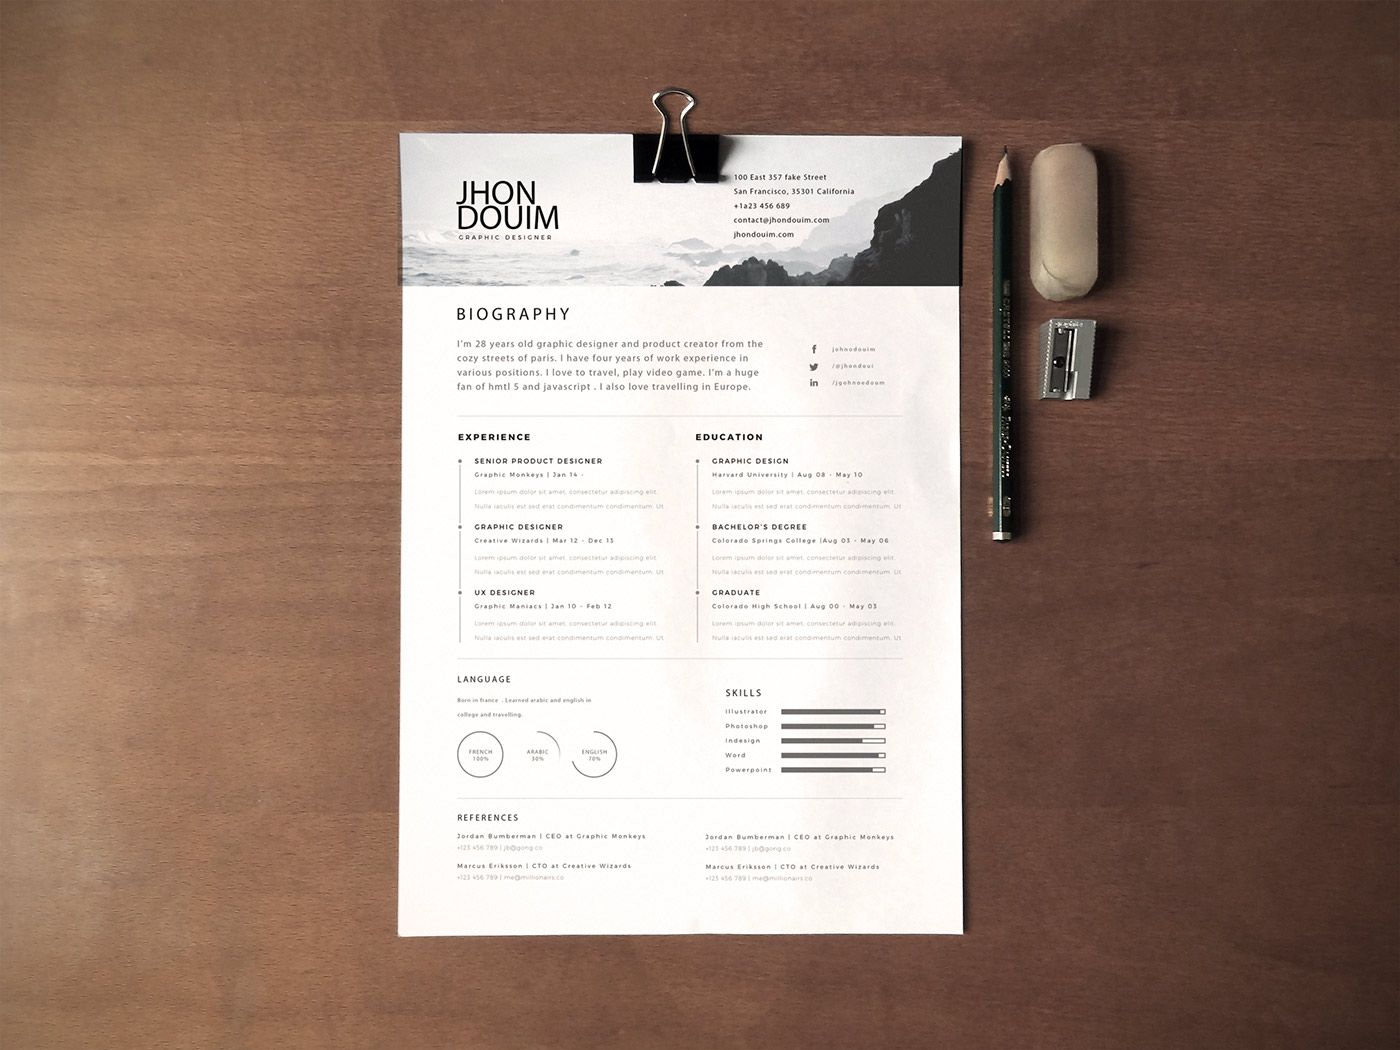 Cv Templates Design%0A Clean Realistic Resume   CV Template PSD I like the rankings for languages